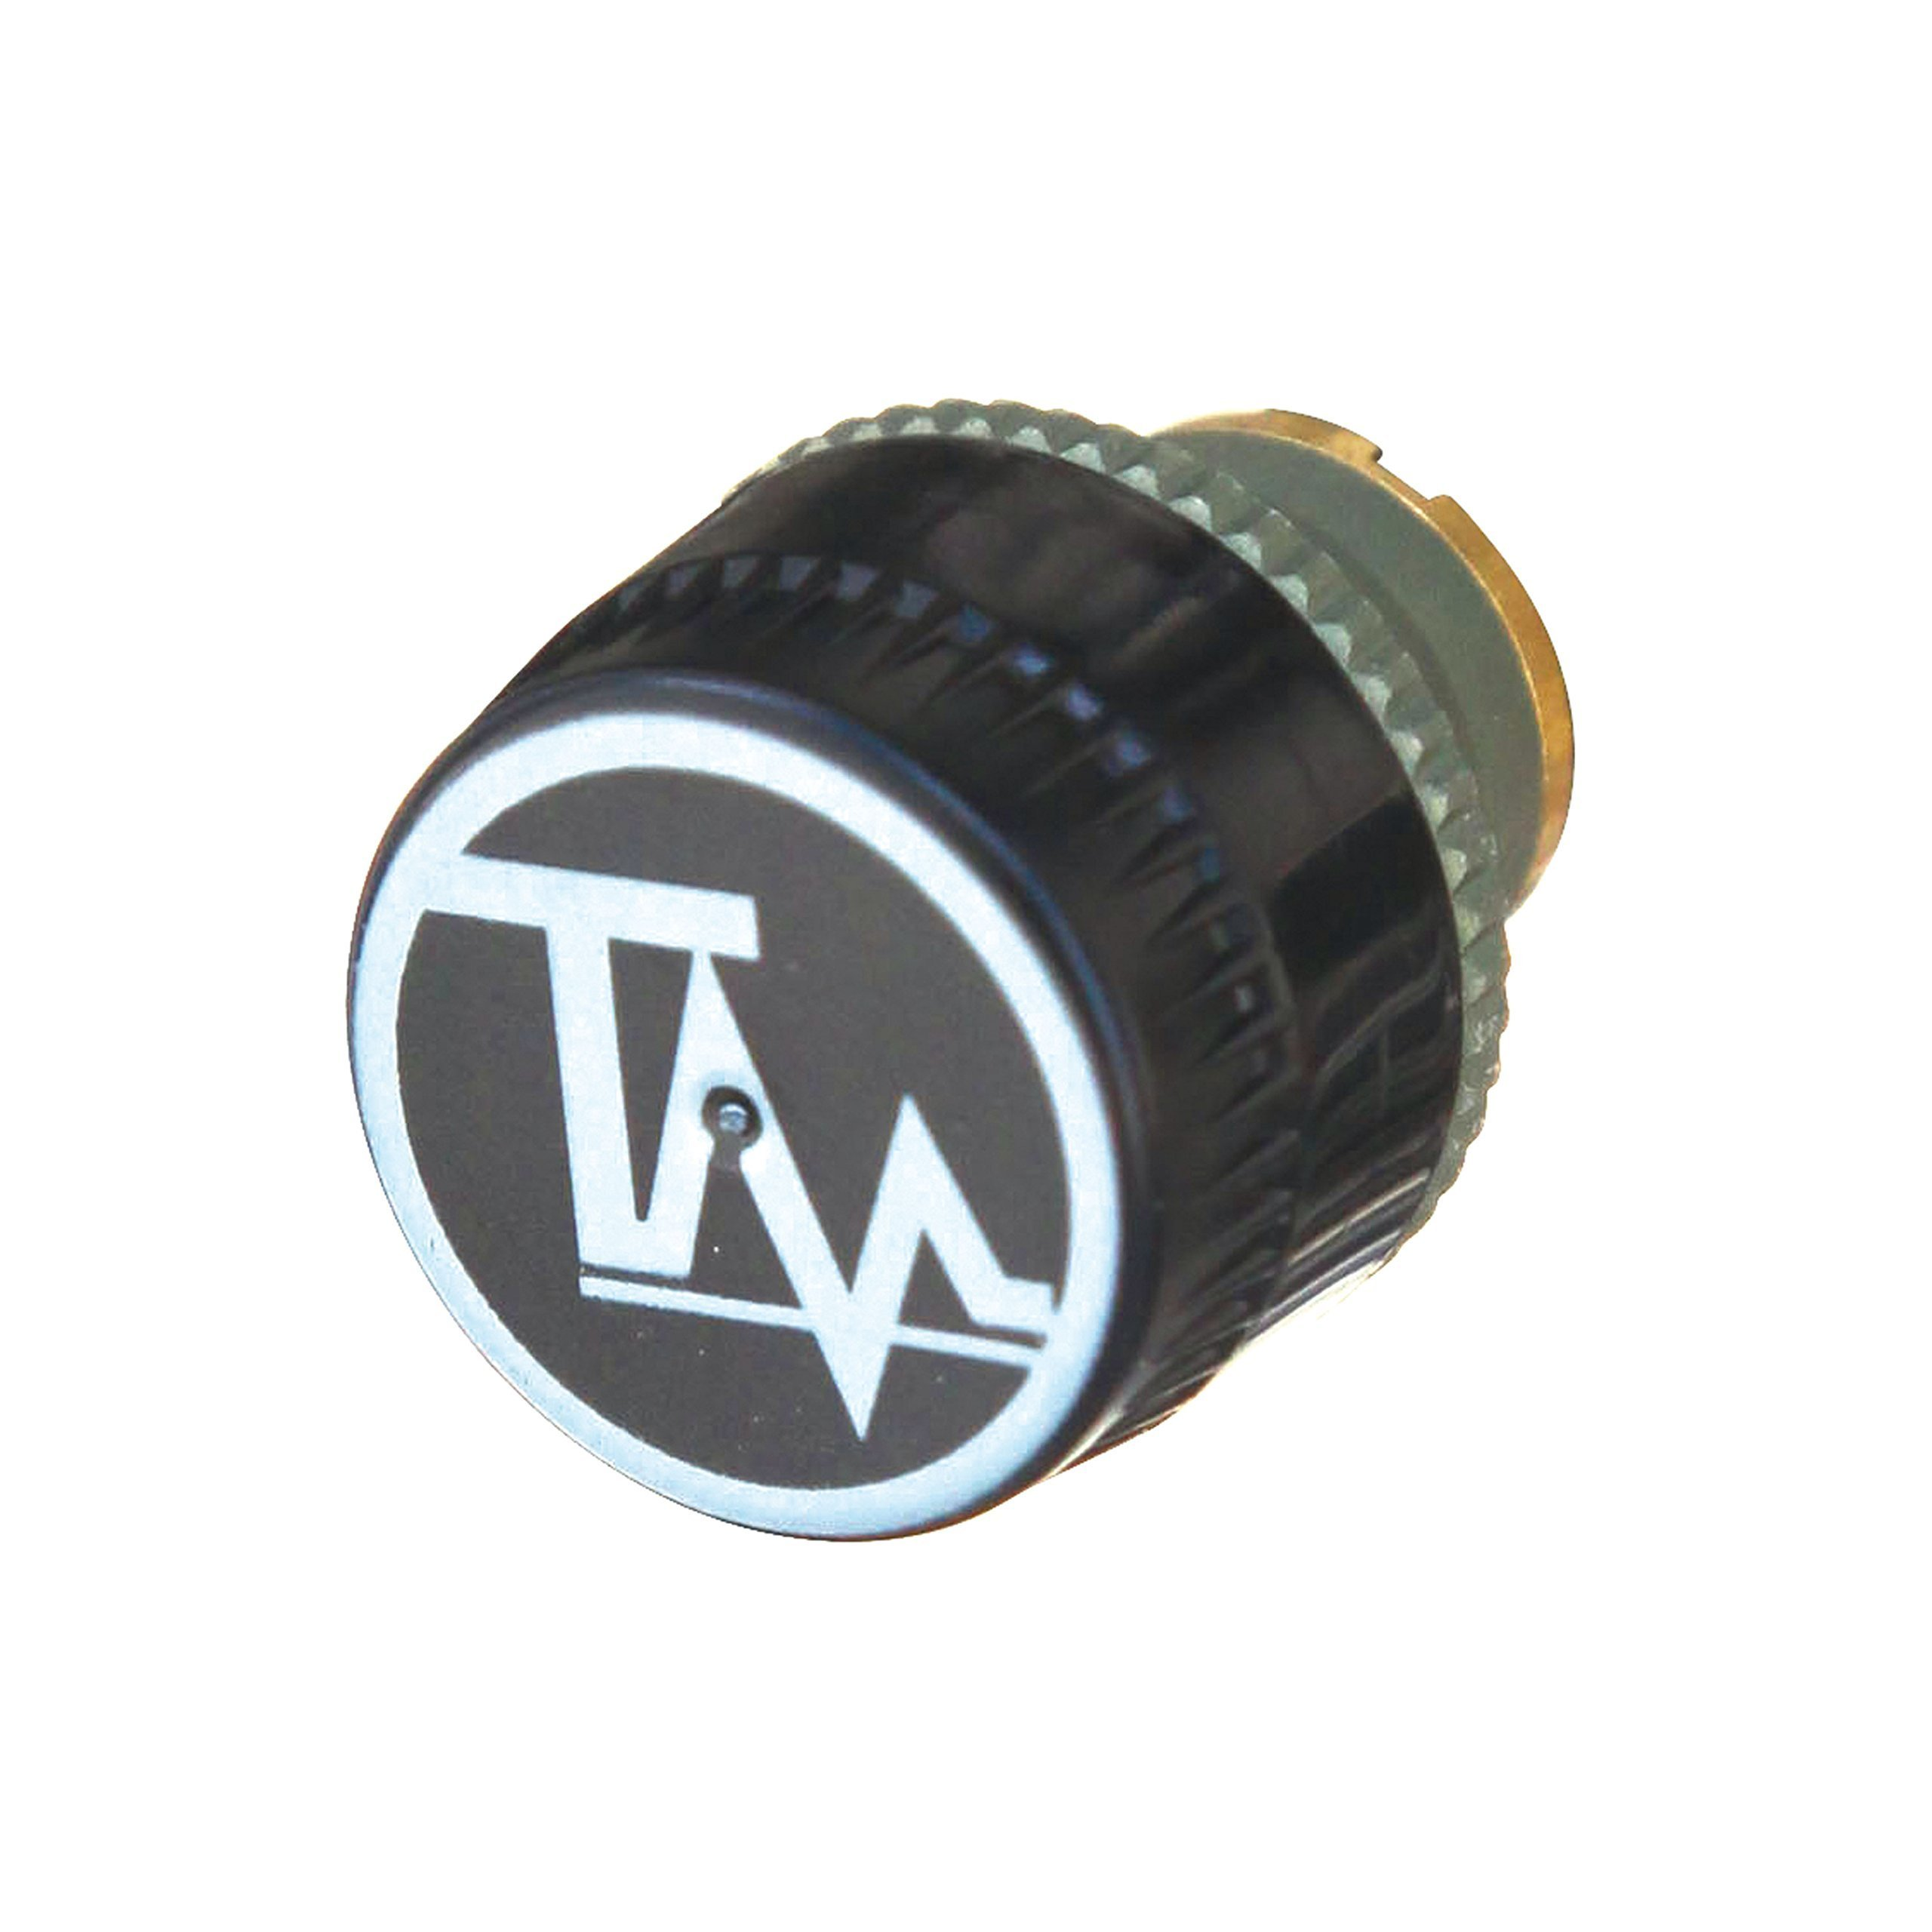 2-Pack Brass Transmitters for TireMinder TPMS (TMG400C, TM66 and A1A) by TireMinder